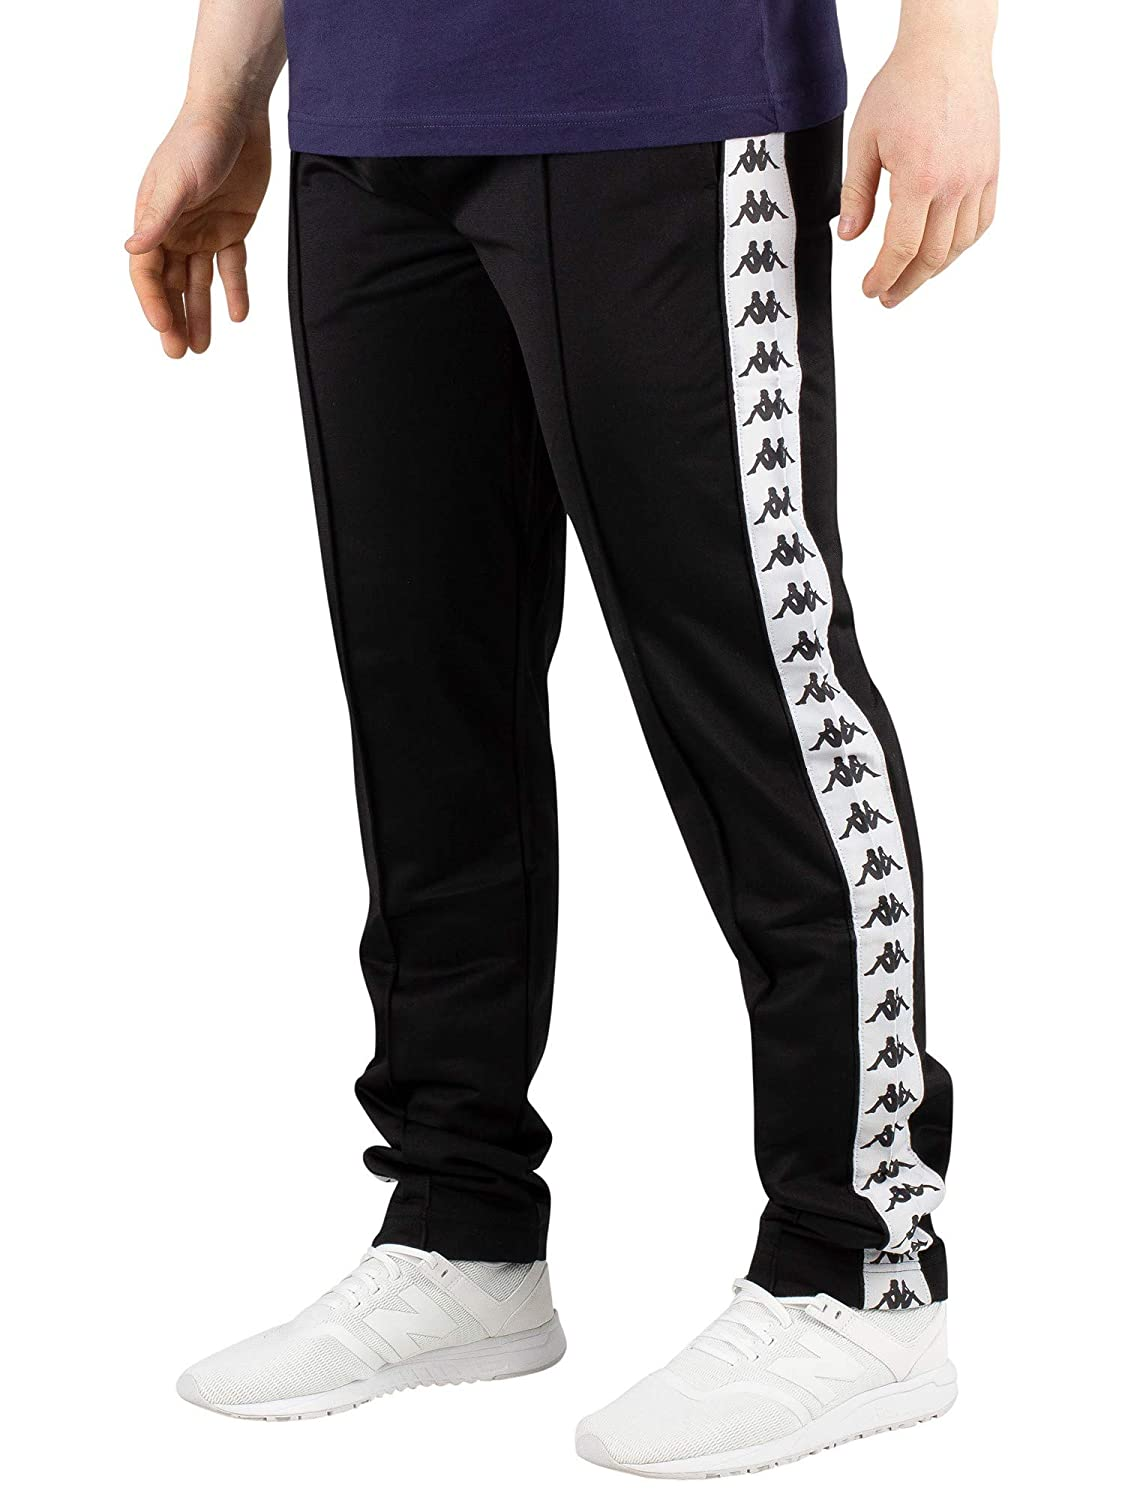 a6b7c32e Kappa Men's 222 Banda Astoria Slim Joggers, Black at Amazon Men's ...